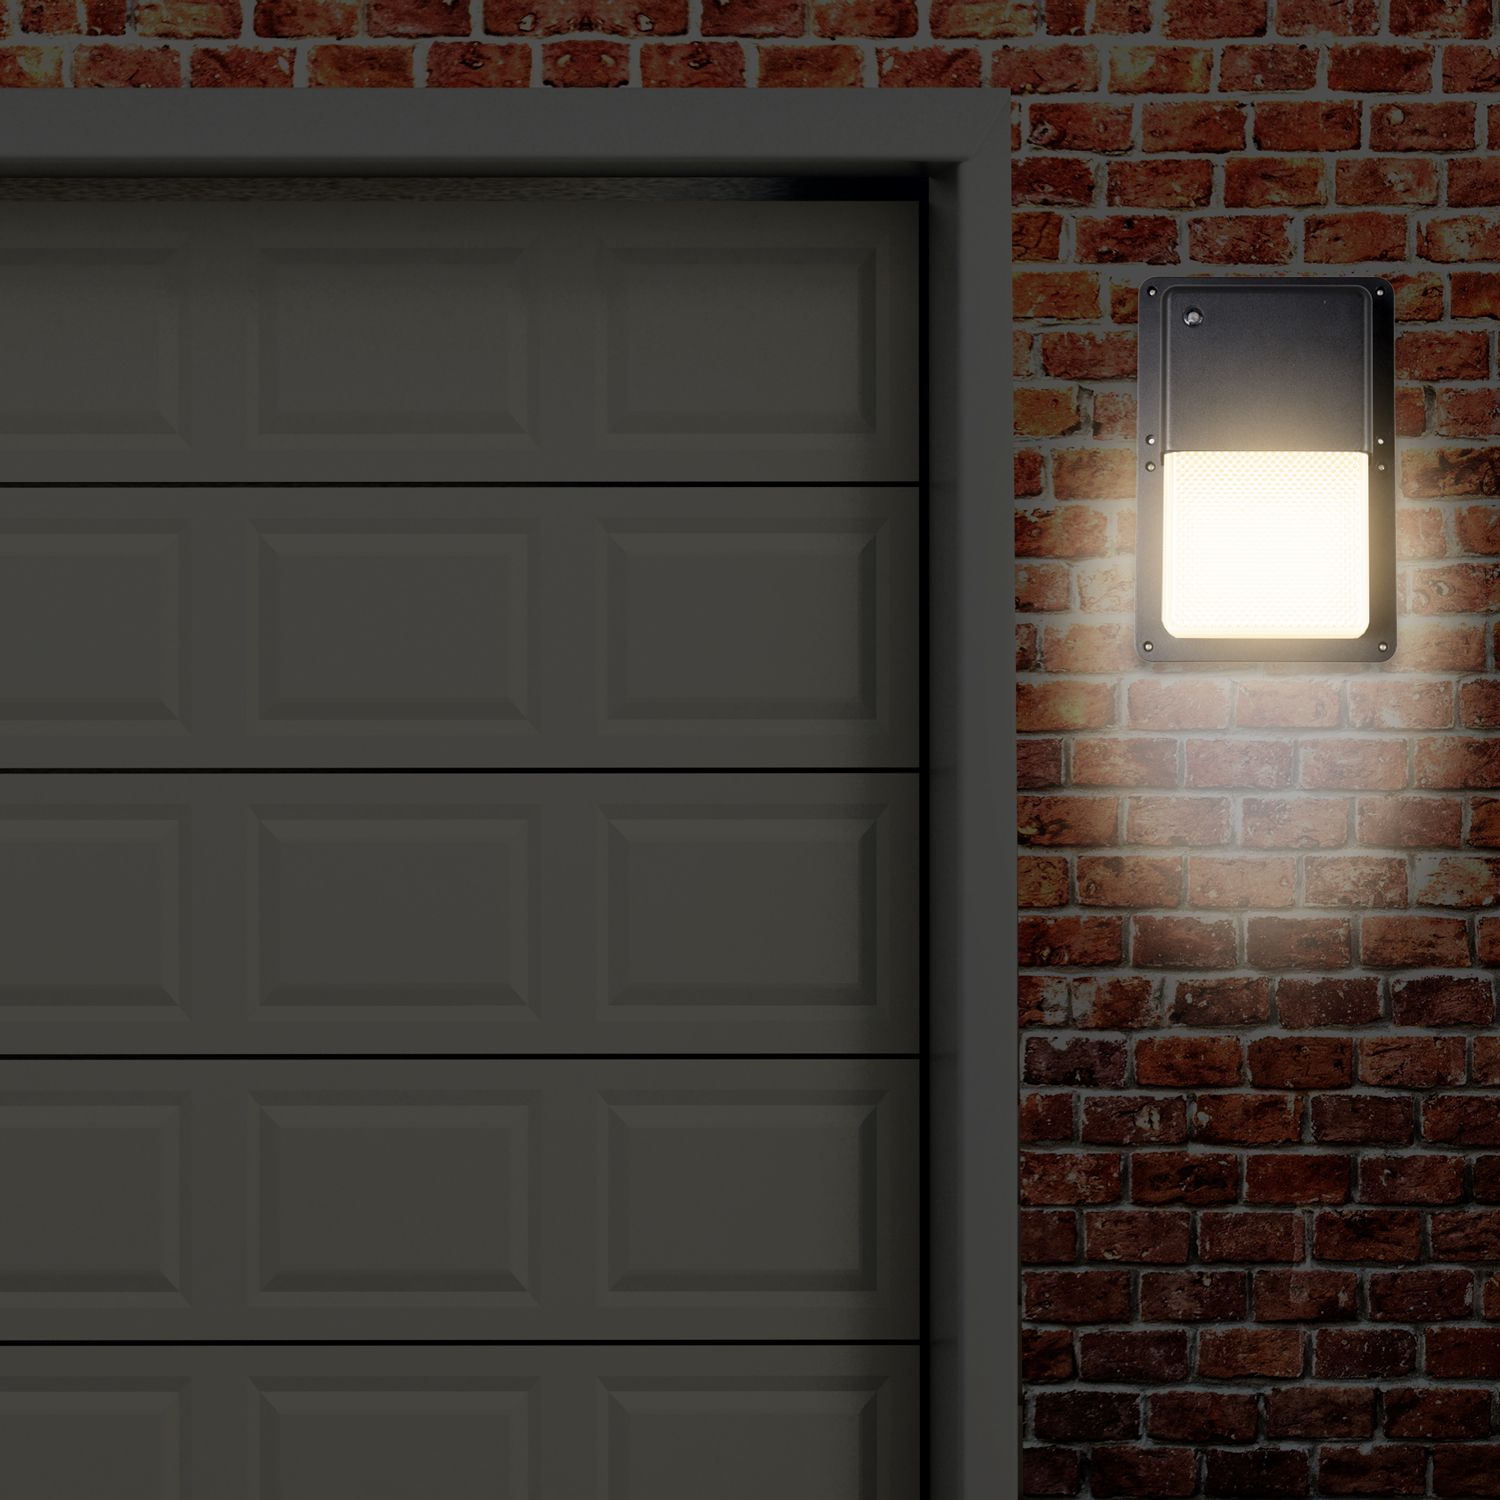 Rectangular Outdoor Led Wall Pack Light With Dusk To Dawn Sensor This Outdoor Led Light Fixture Is The Perfec Wall Pack Lights Led Outdoor Lighting Wall Packs